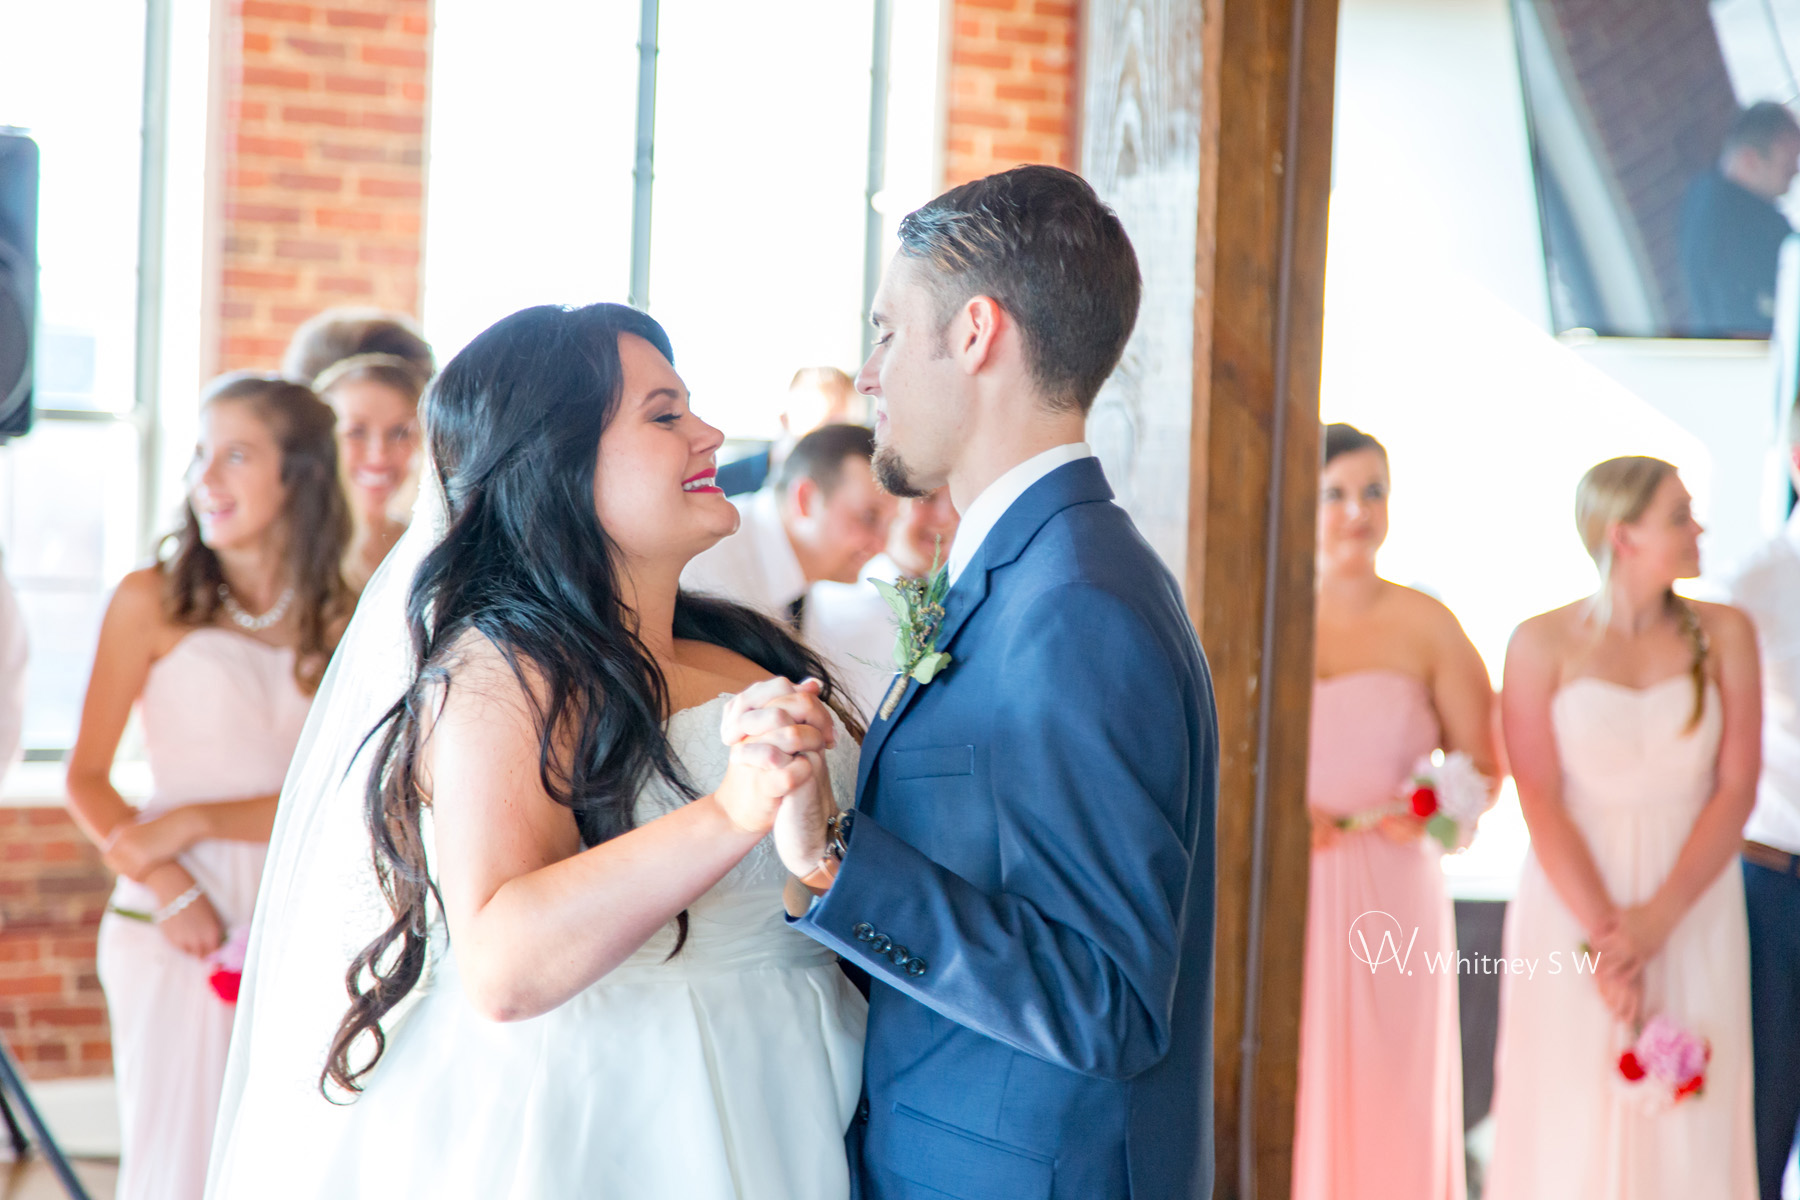 SimpsonFalinWedding_Photography by Whitney S Williams (271).jpg